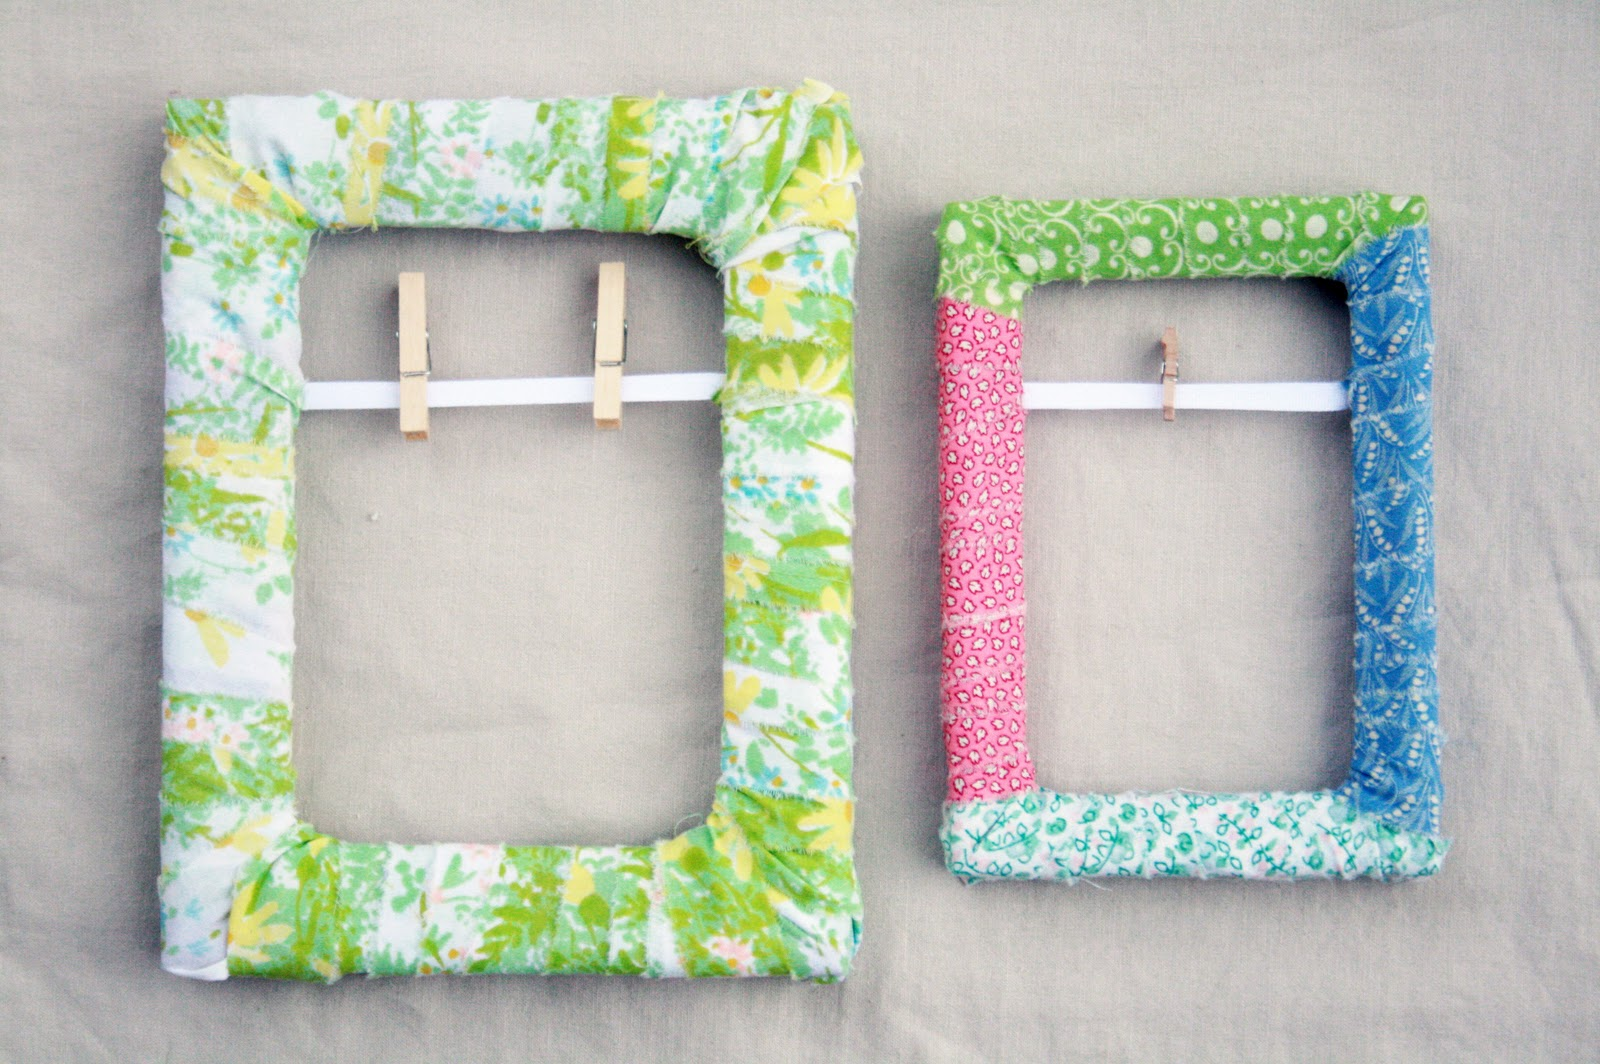 Fabric Scrap Wrapped Frame - myrecipemagic.